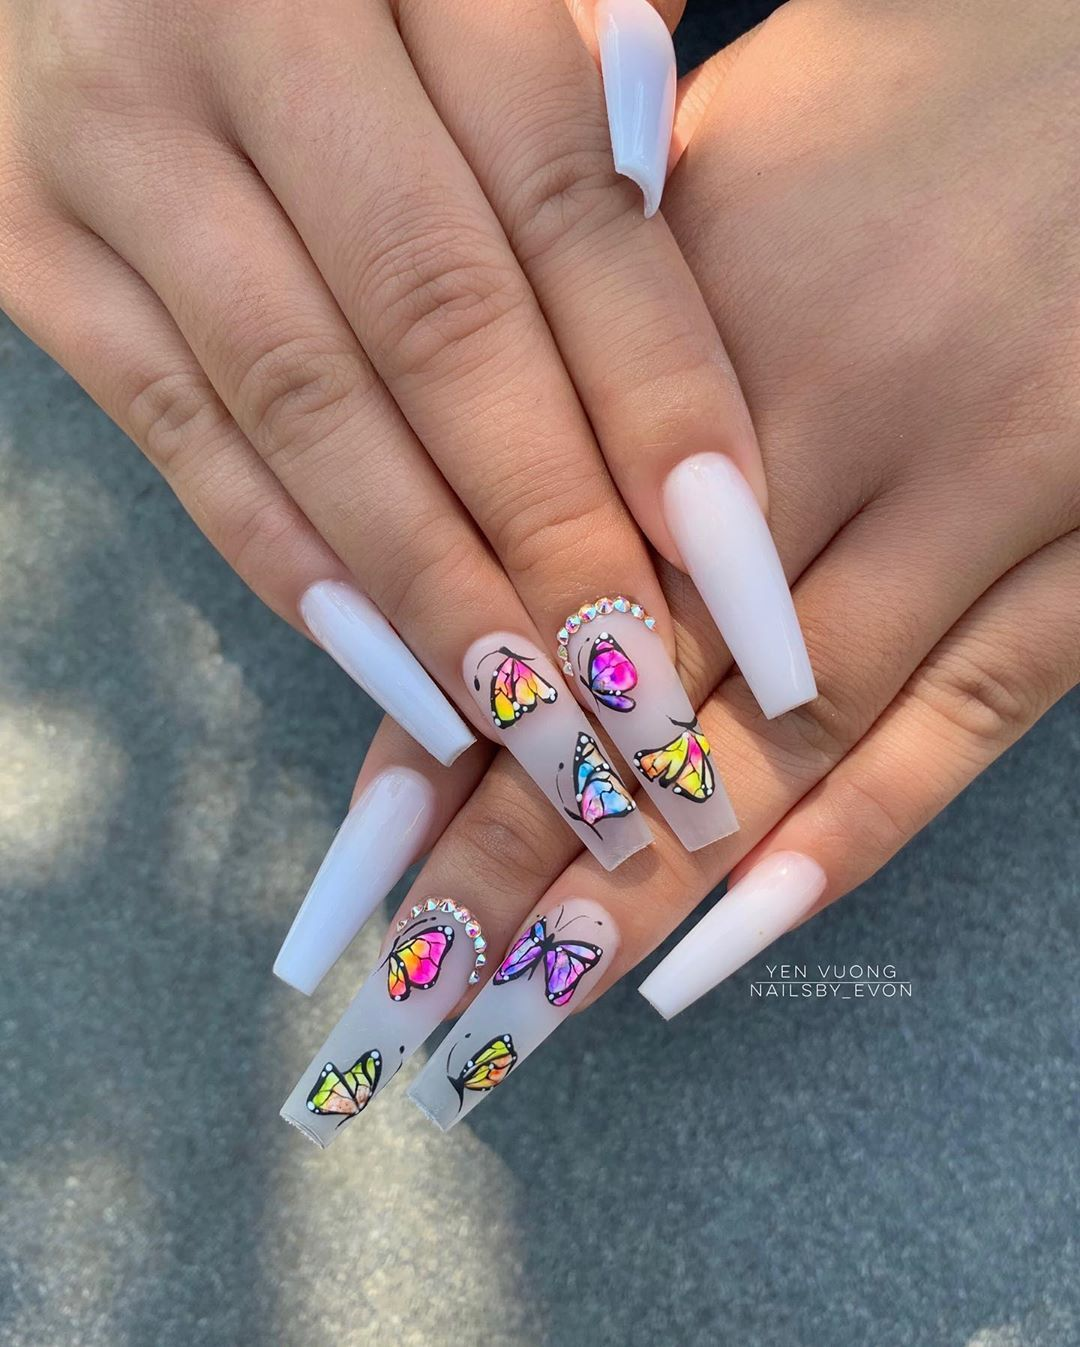 Evon Yen Vuong On Instagram Do You Like These Hand Drawn Butterflies Cutie Clients Brought Phot Long Acrylic Nails Coffin Nails Designs Best Acrylic Nails